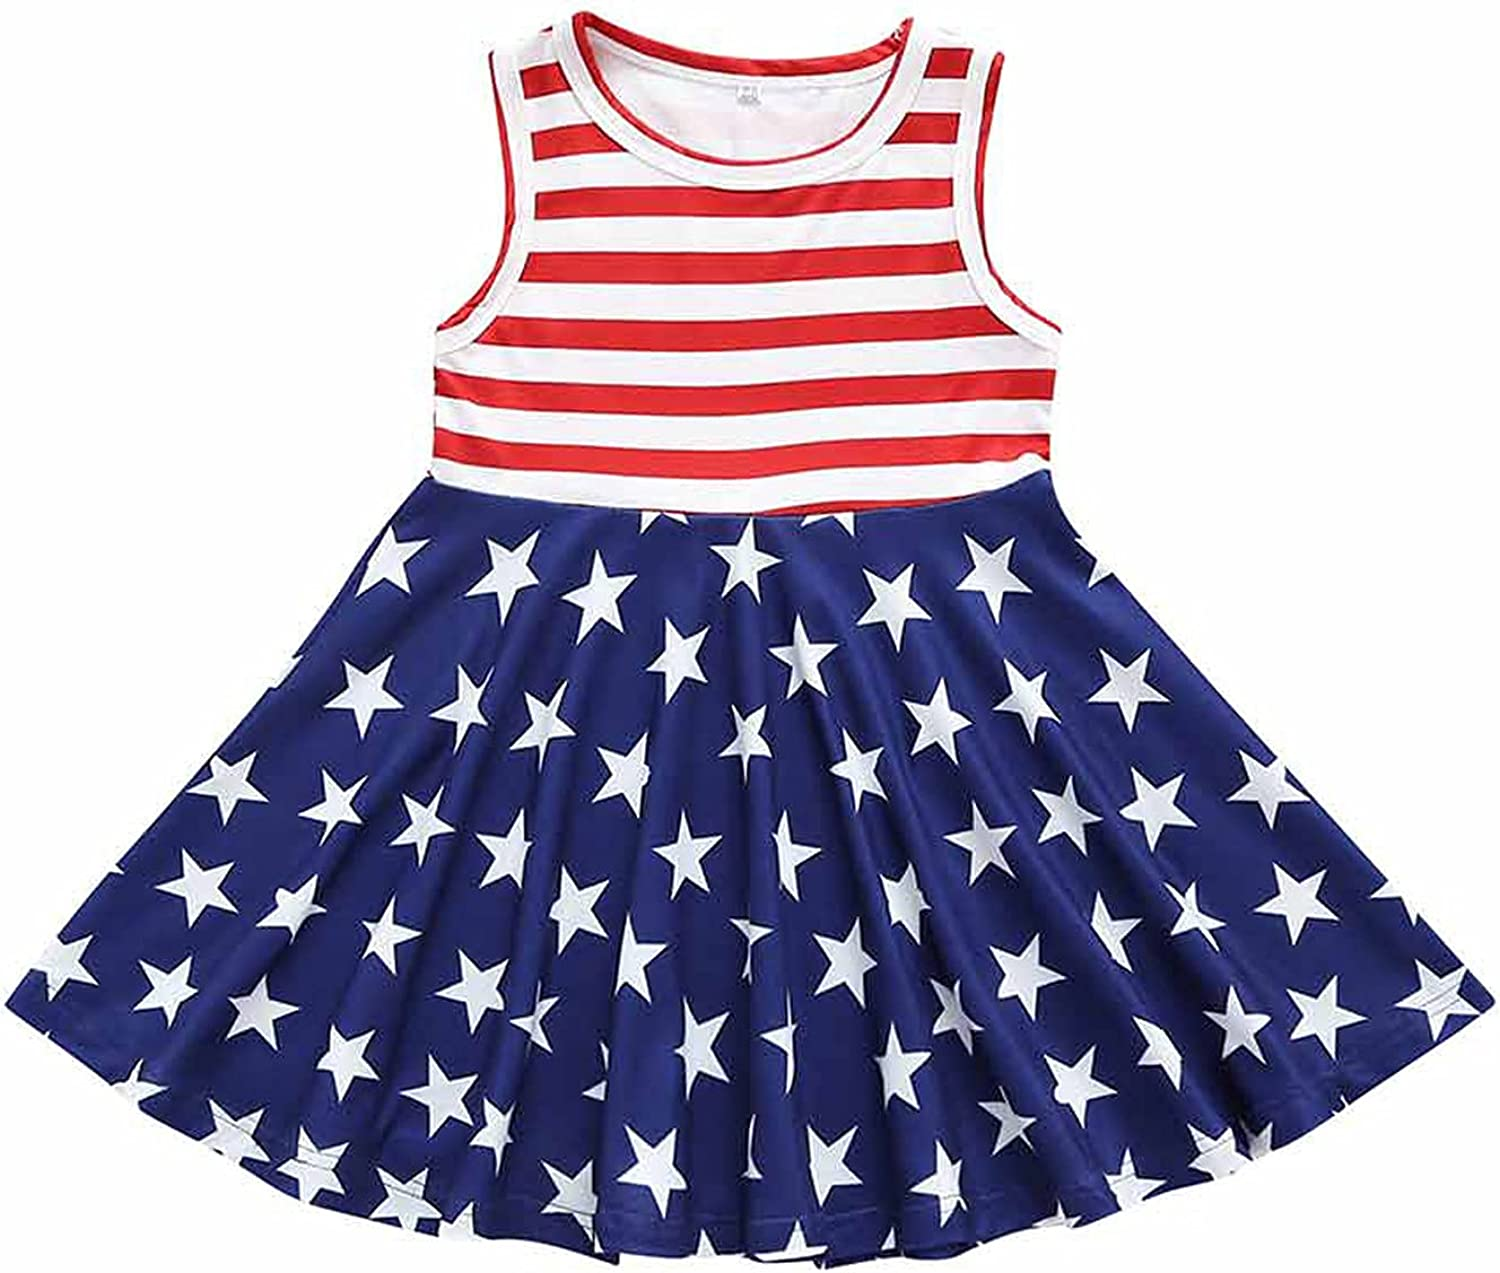 Some reservation Toddler Baby Little Girls 4th Sleeveless American Outfit July Selling of